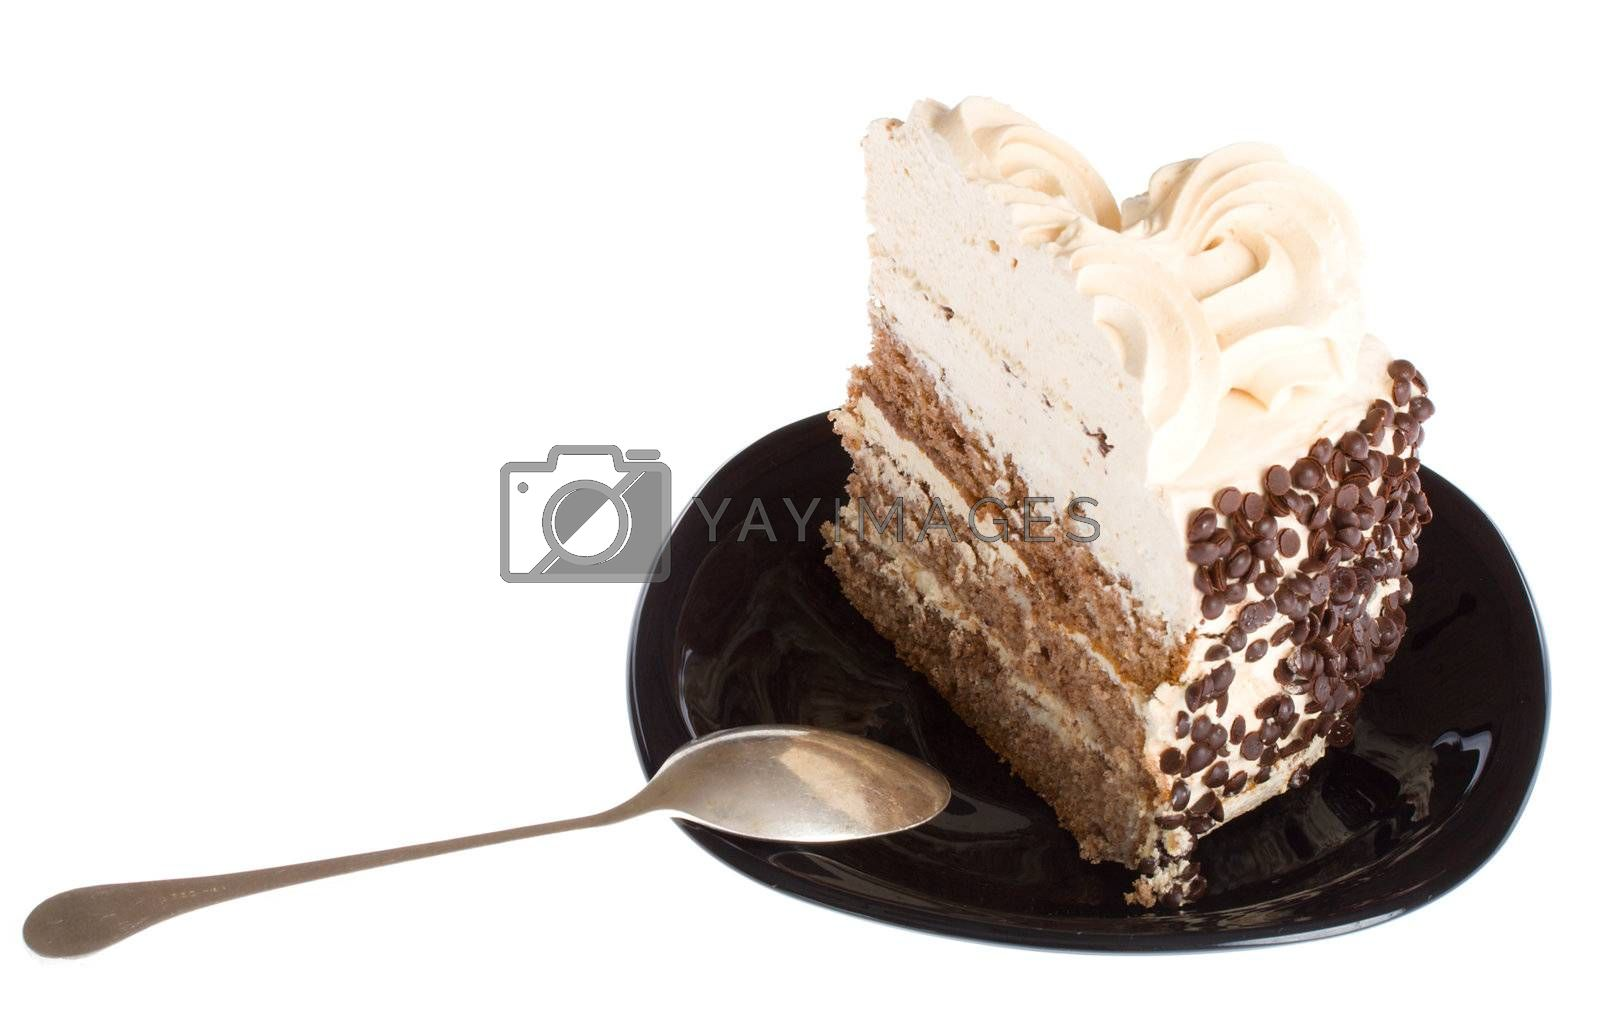 Royalty free image of piece of cake and spoon on black plate by Alekcey